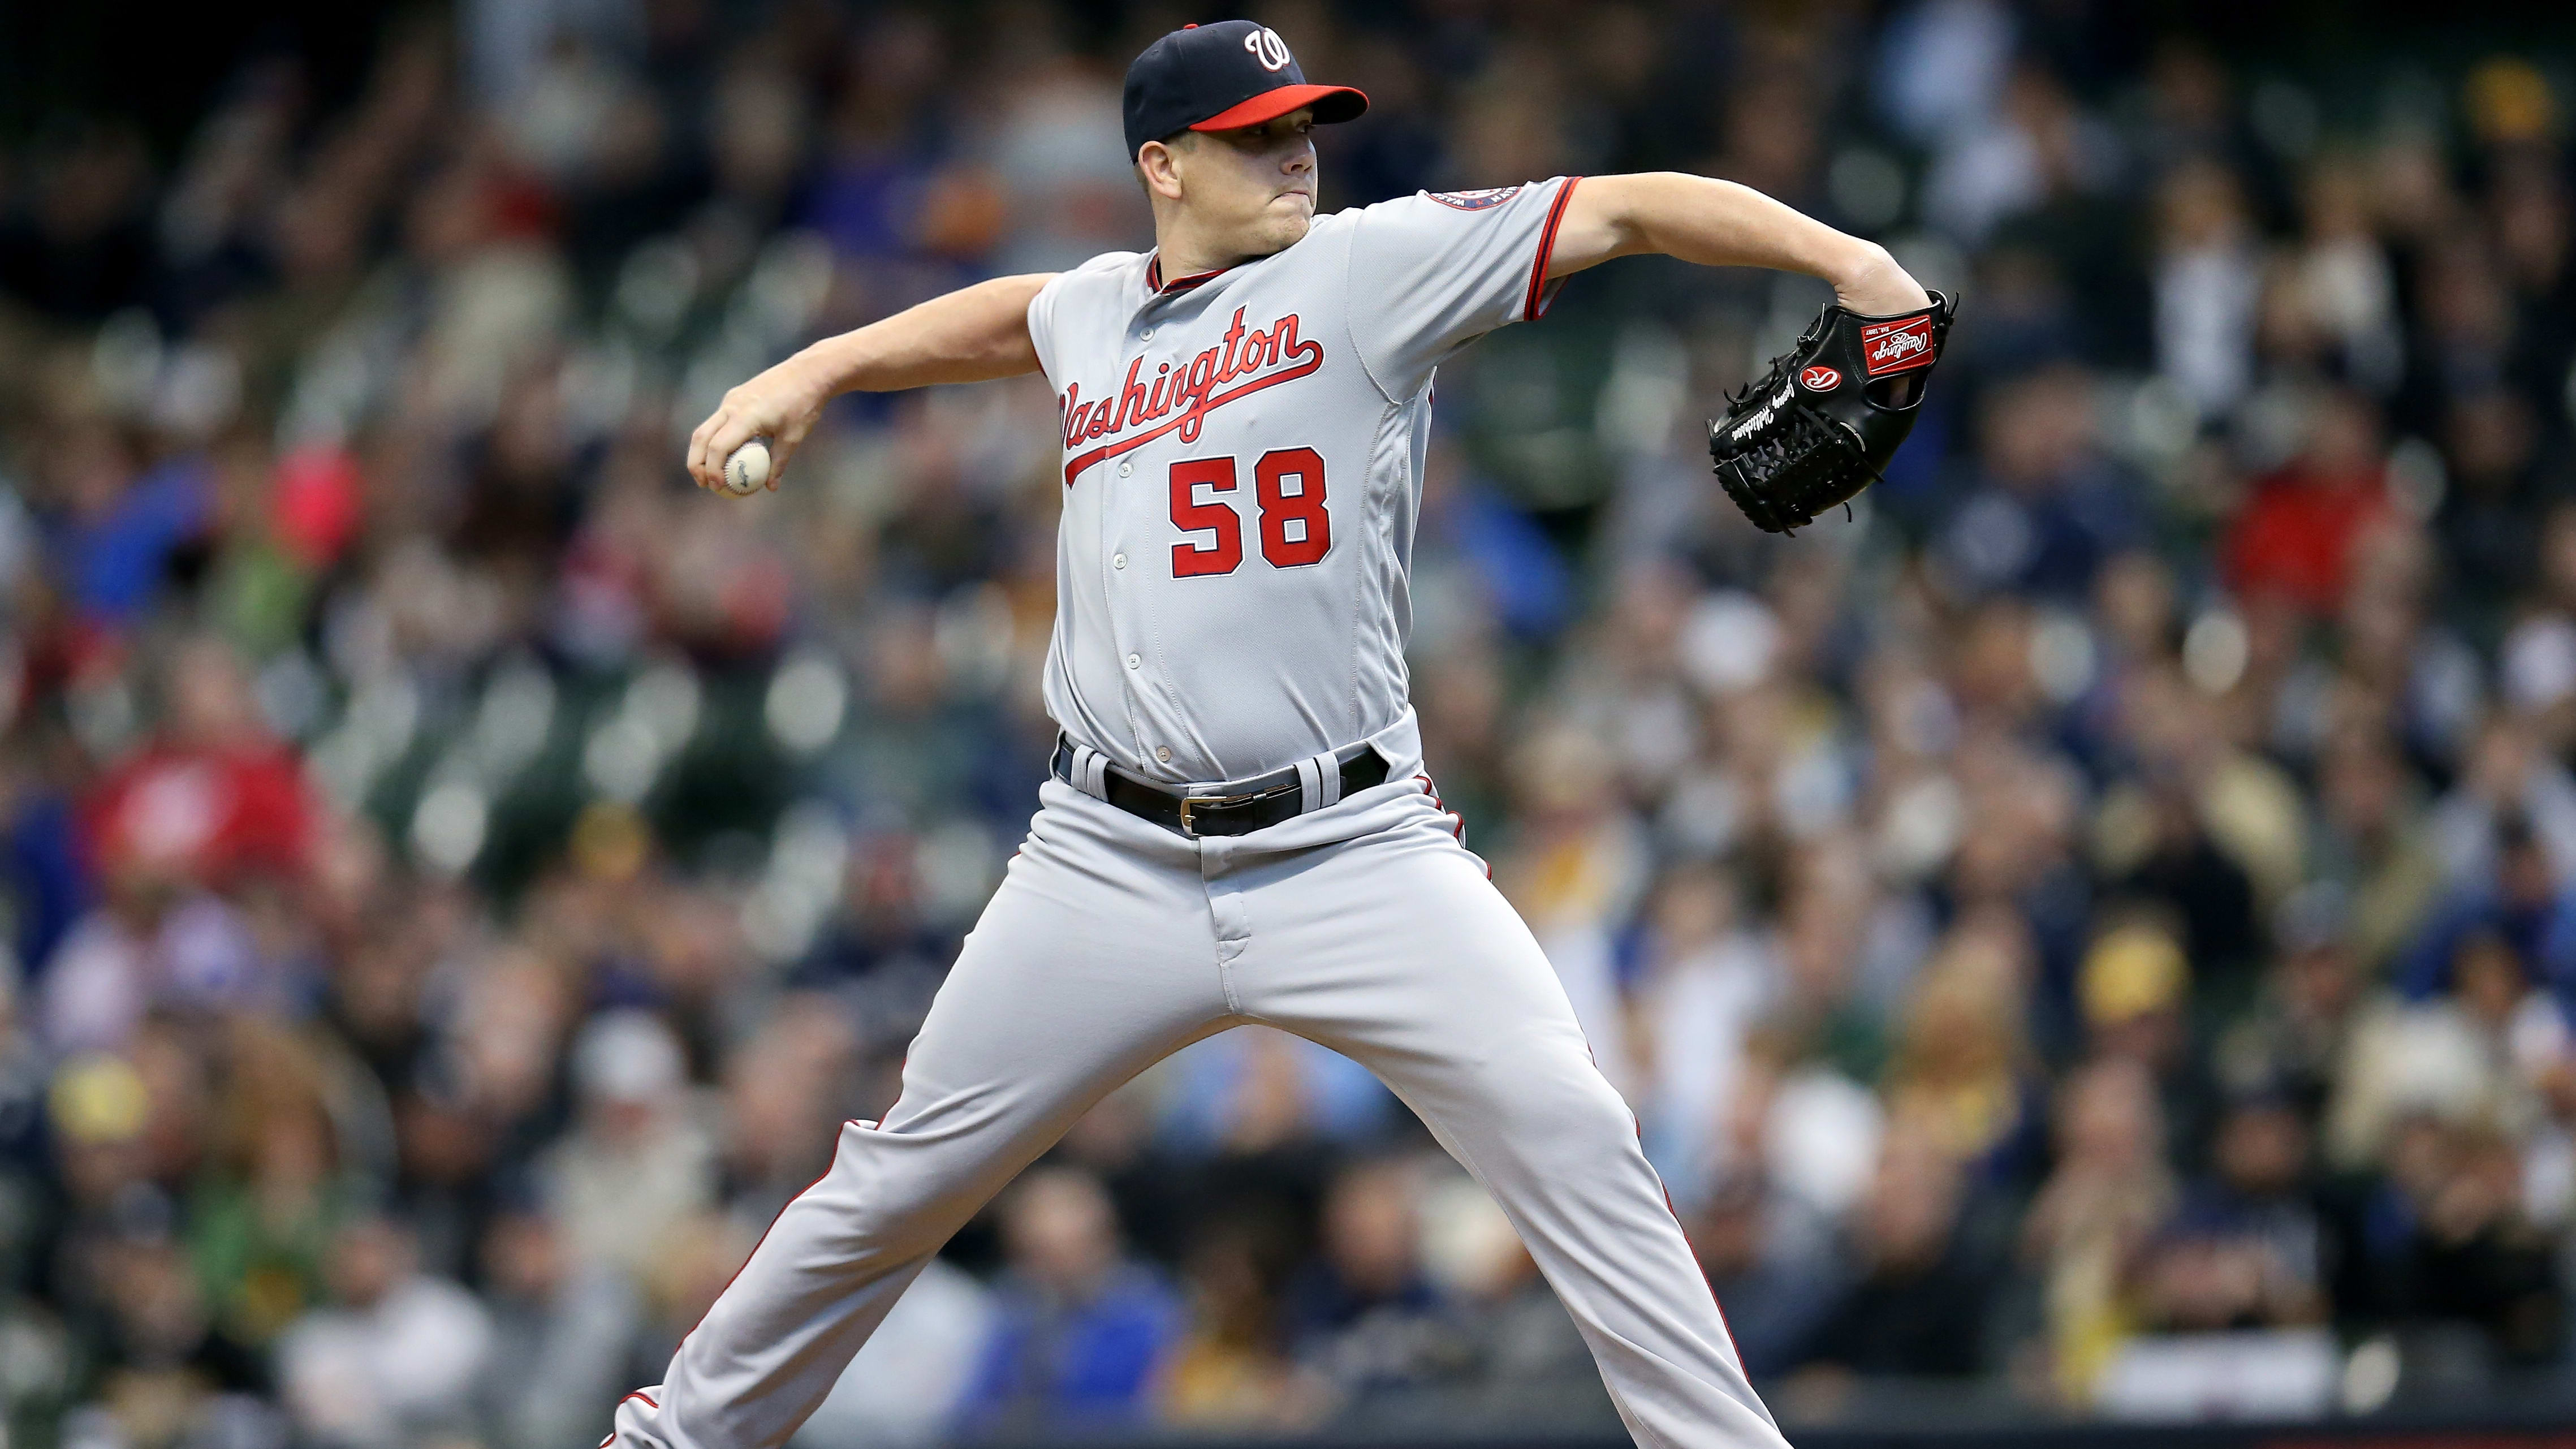 MILWAUKEE, WISCONSIN - MAY 08:  Jeremy Hellickson #58 of the Washington Nationals pitches in the first inning against the Milwaukee Brewers at Miller Park on May 08, 2019 in Milwaukee, Wisconsin. (Photo by Dylan Buell/Getty Images)